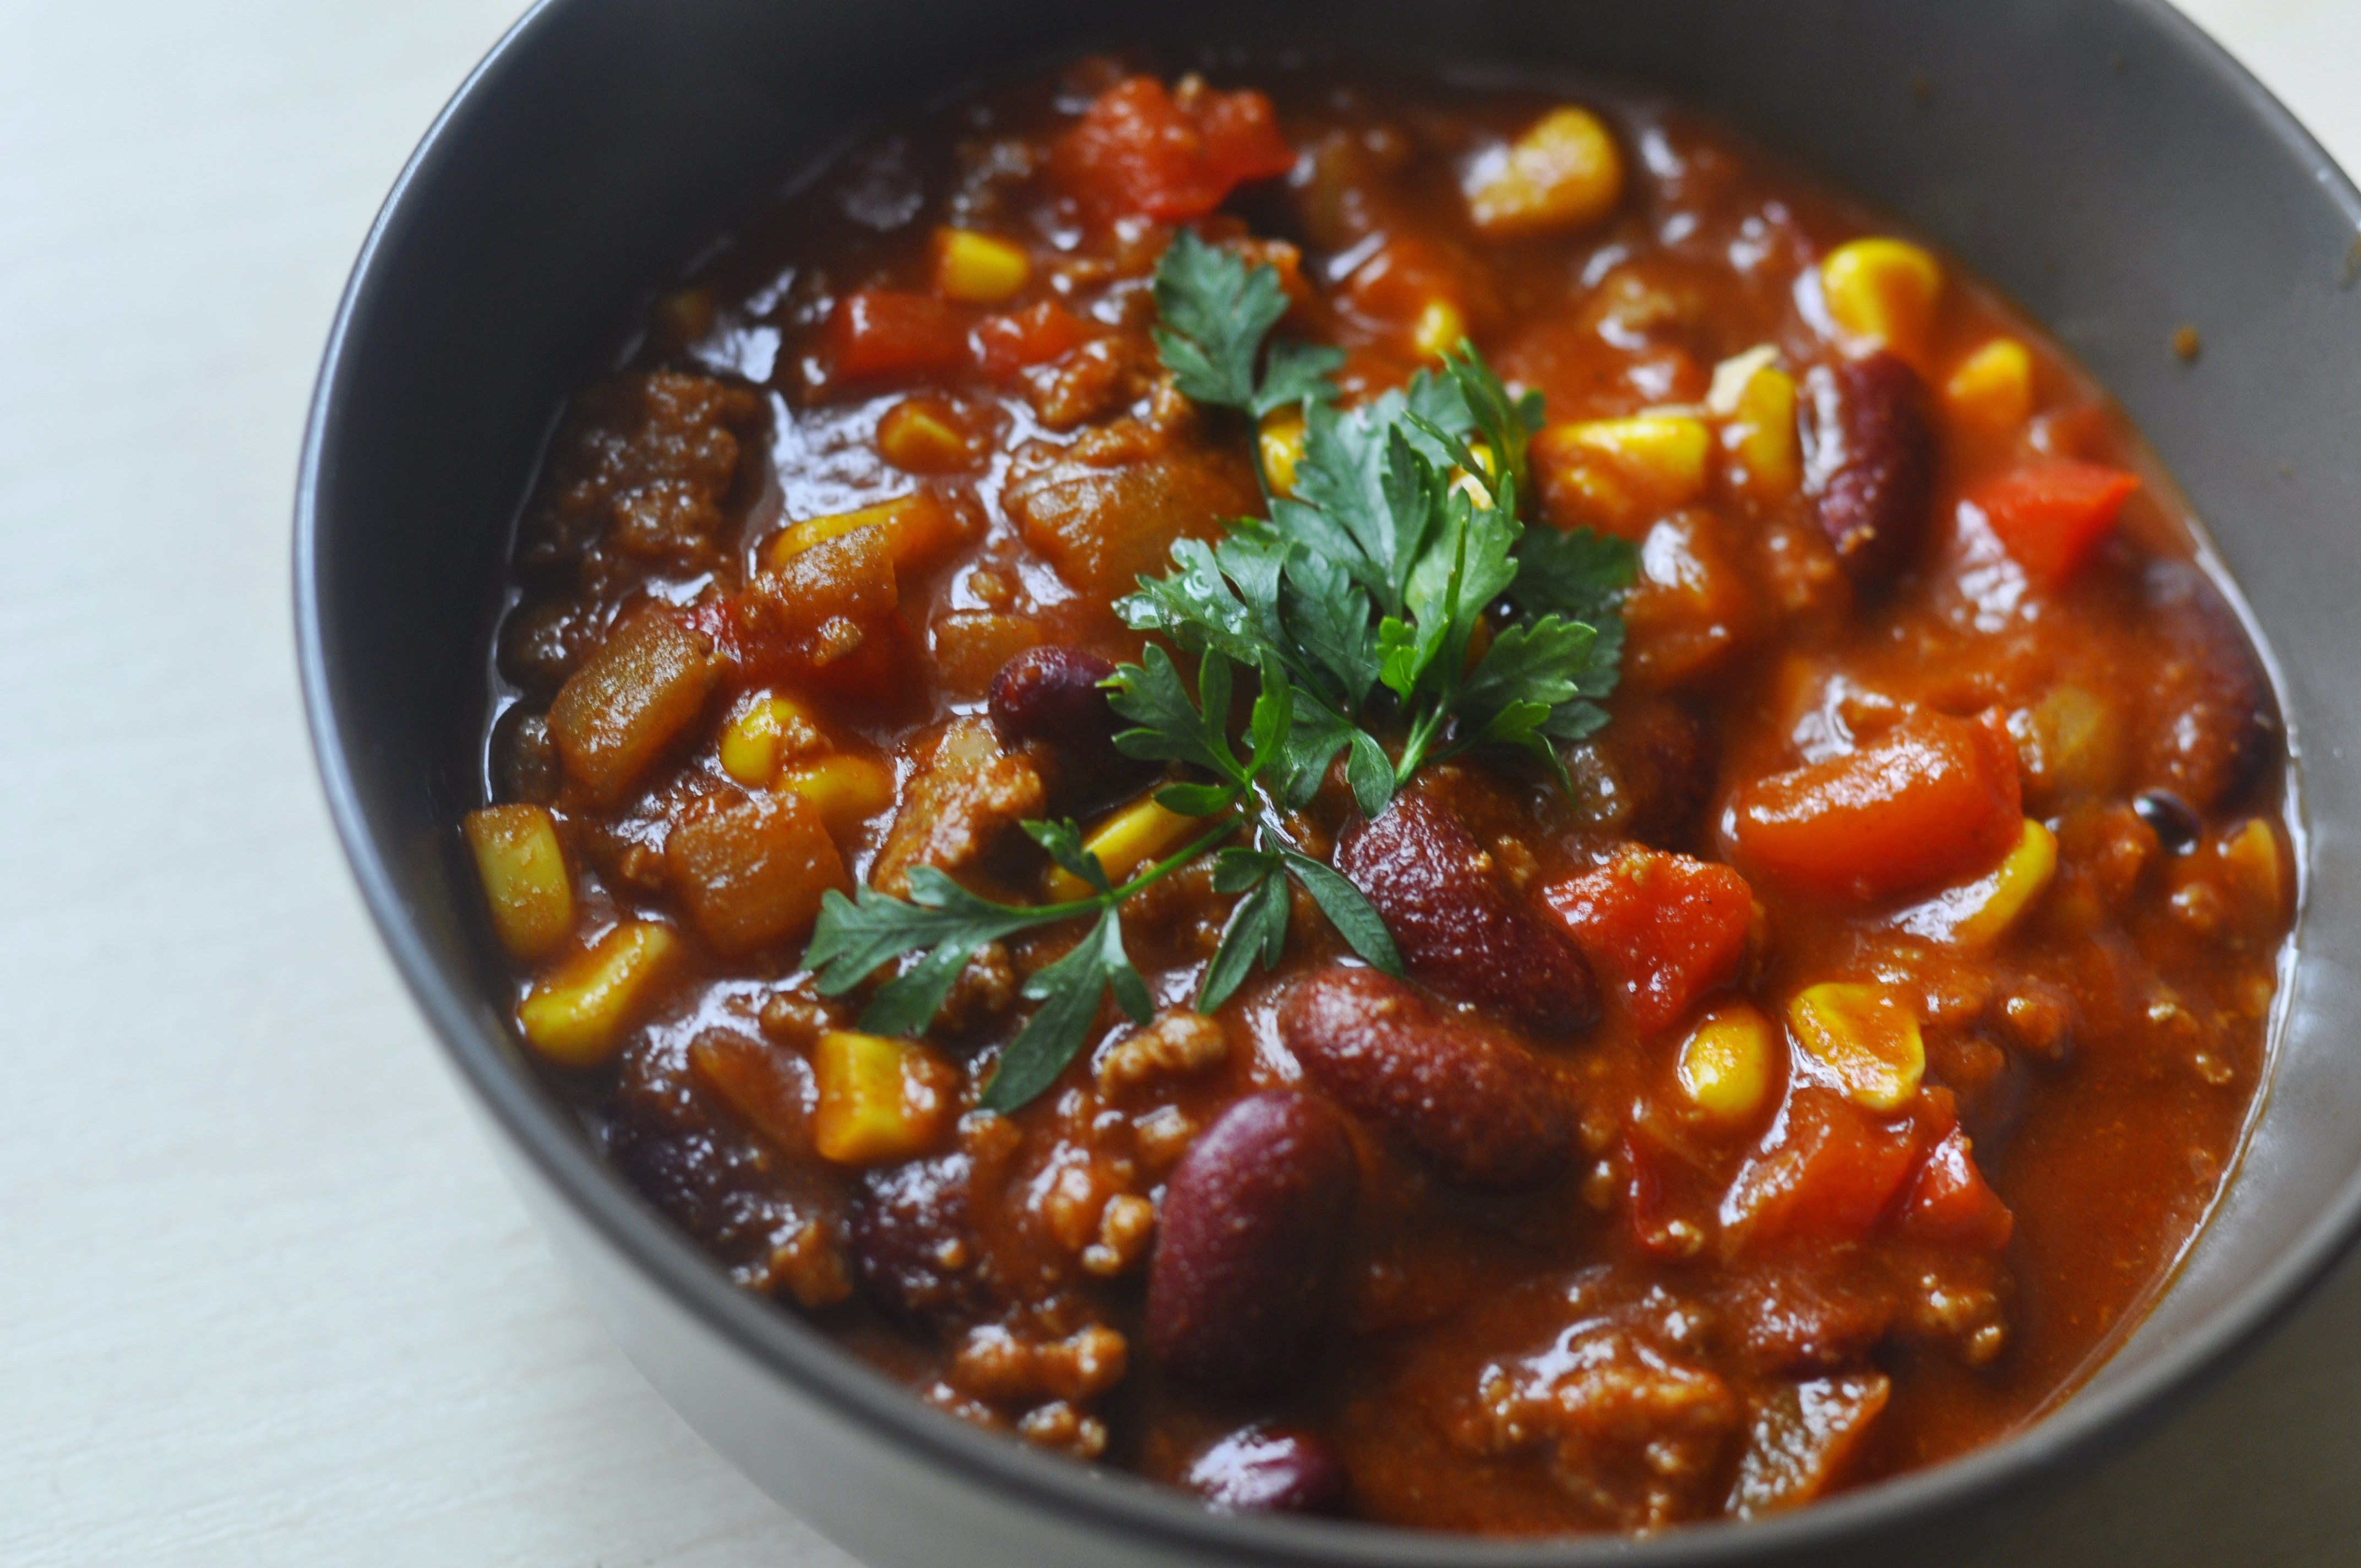 Chili Con Carne Wallpapers High Quality | Download Free